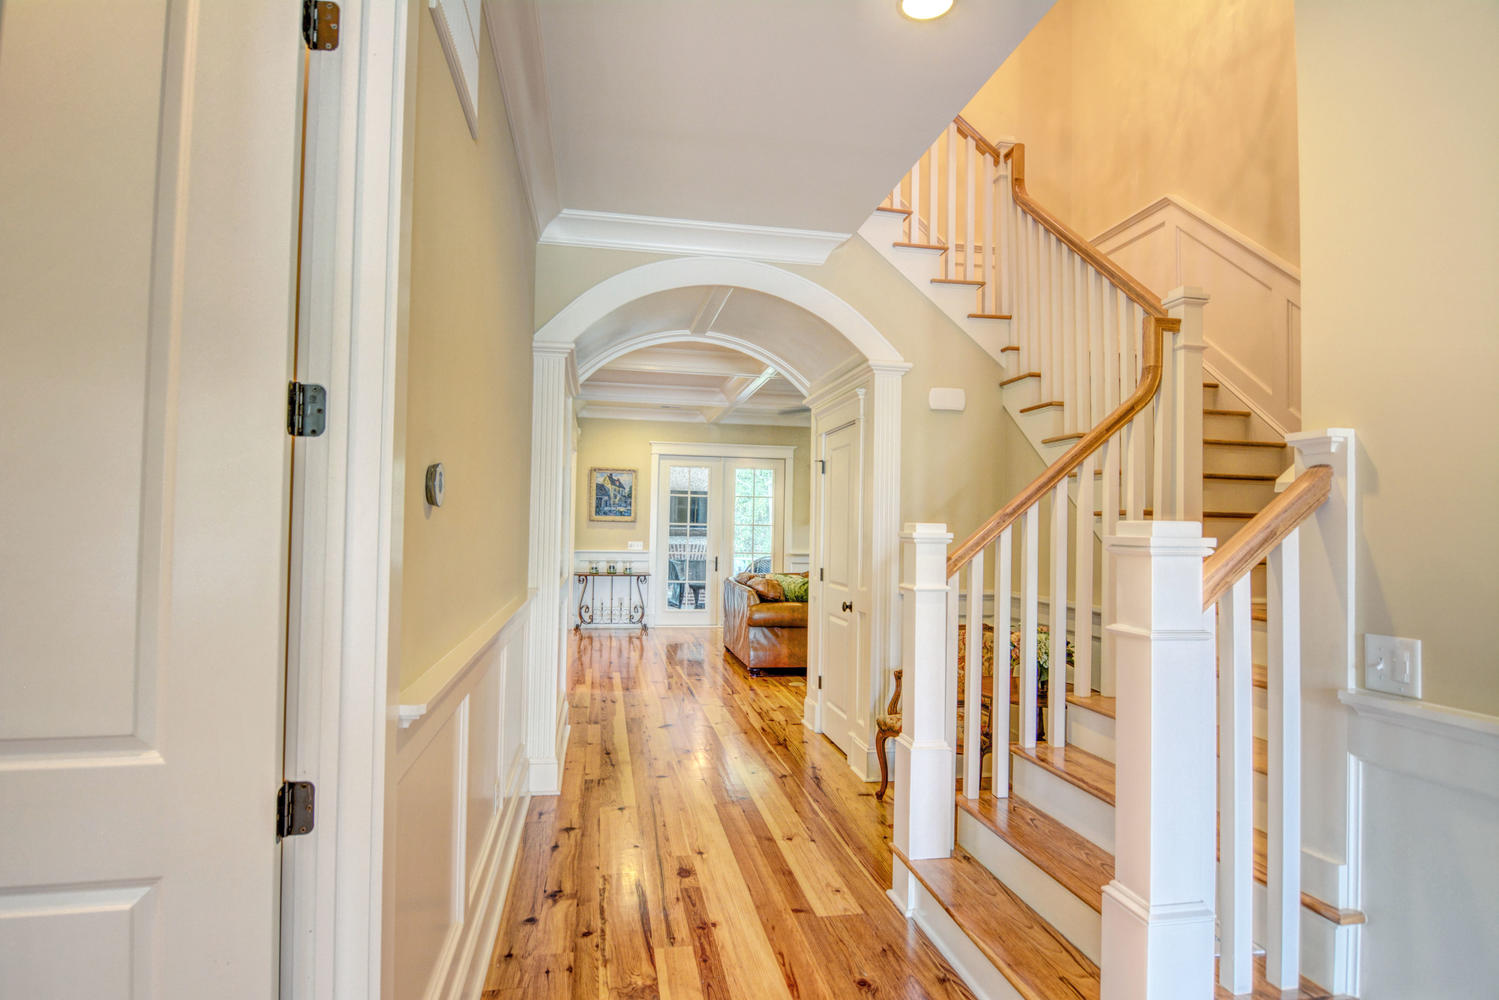 733 Susquehanna Ln Wilmington-large-002-28-Foyer-1499x1000-72dpi.jpg